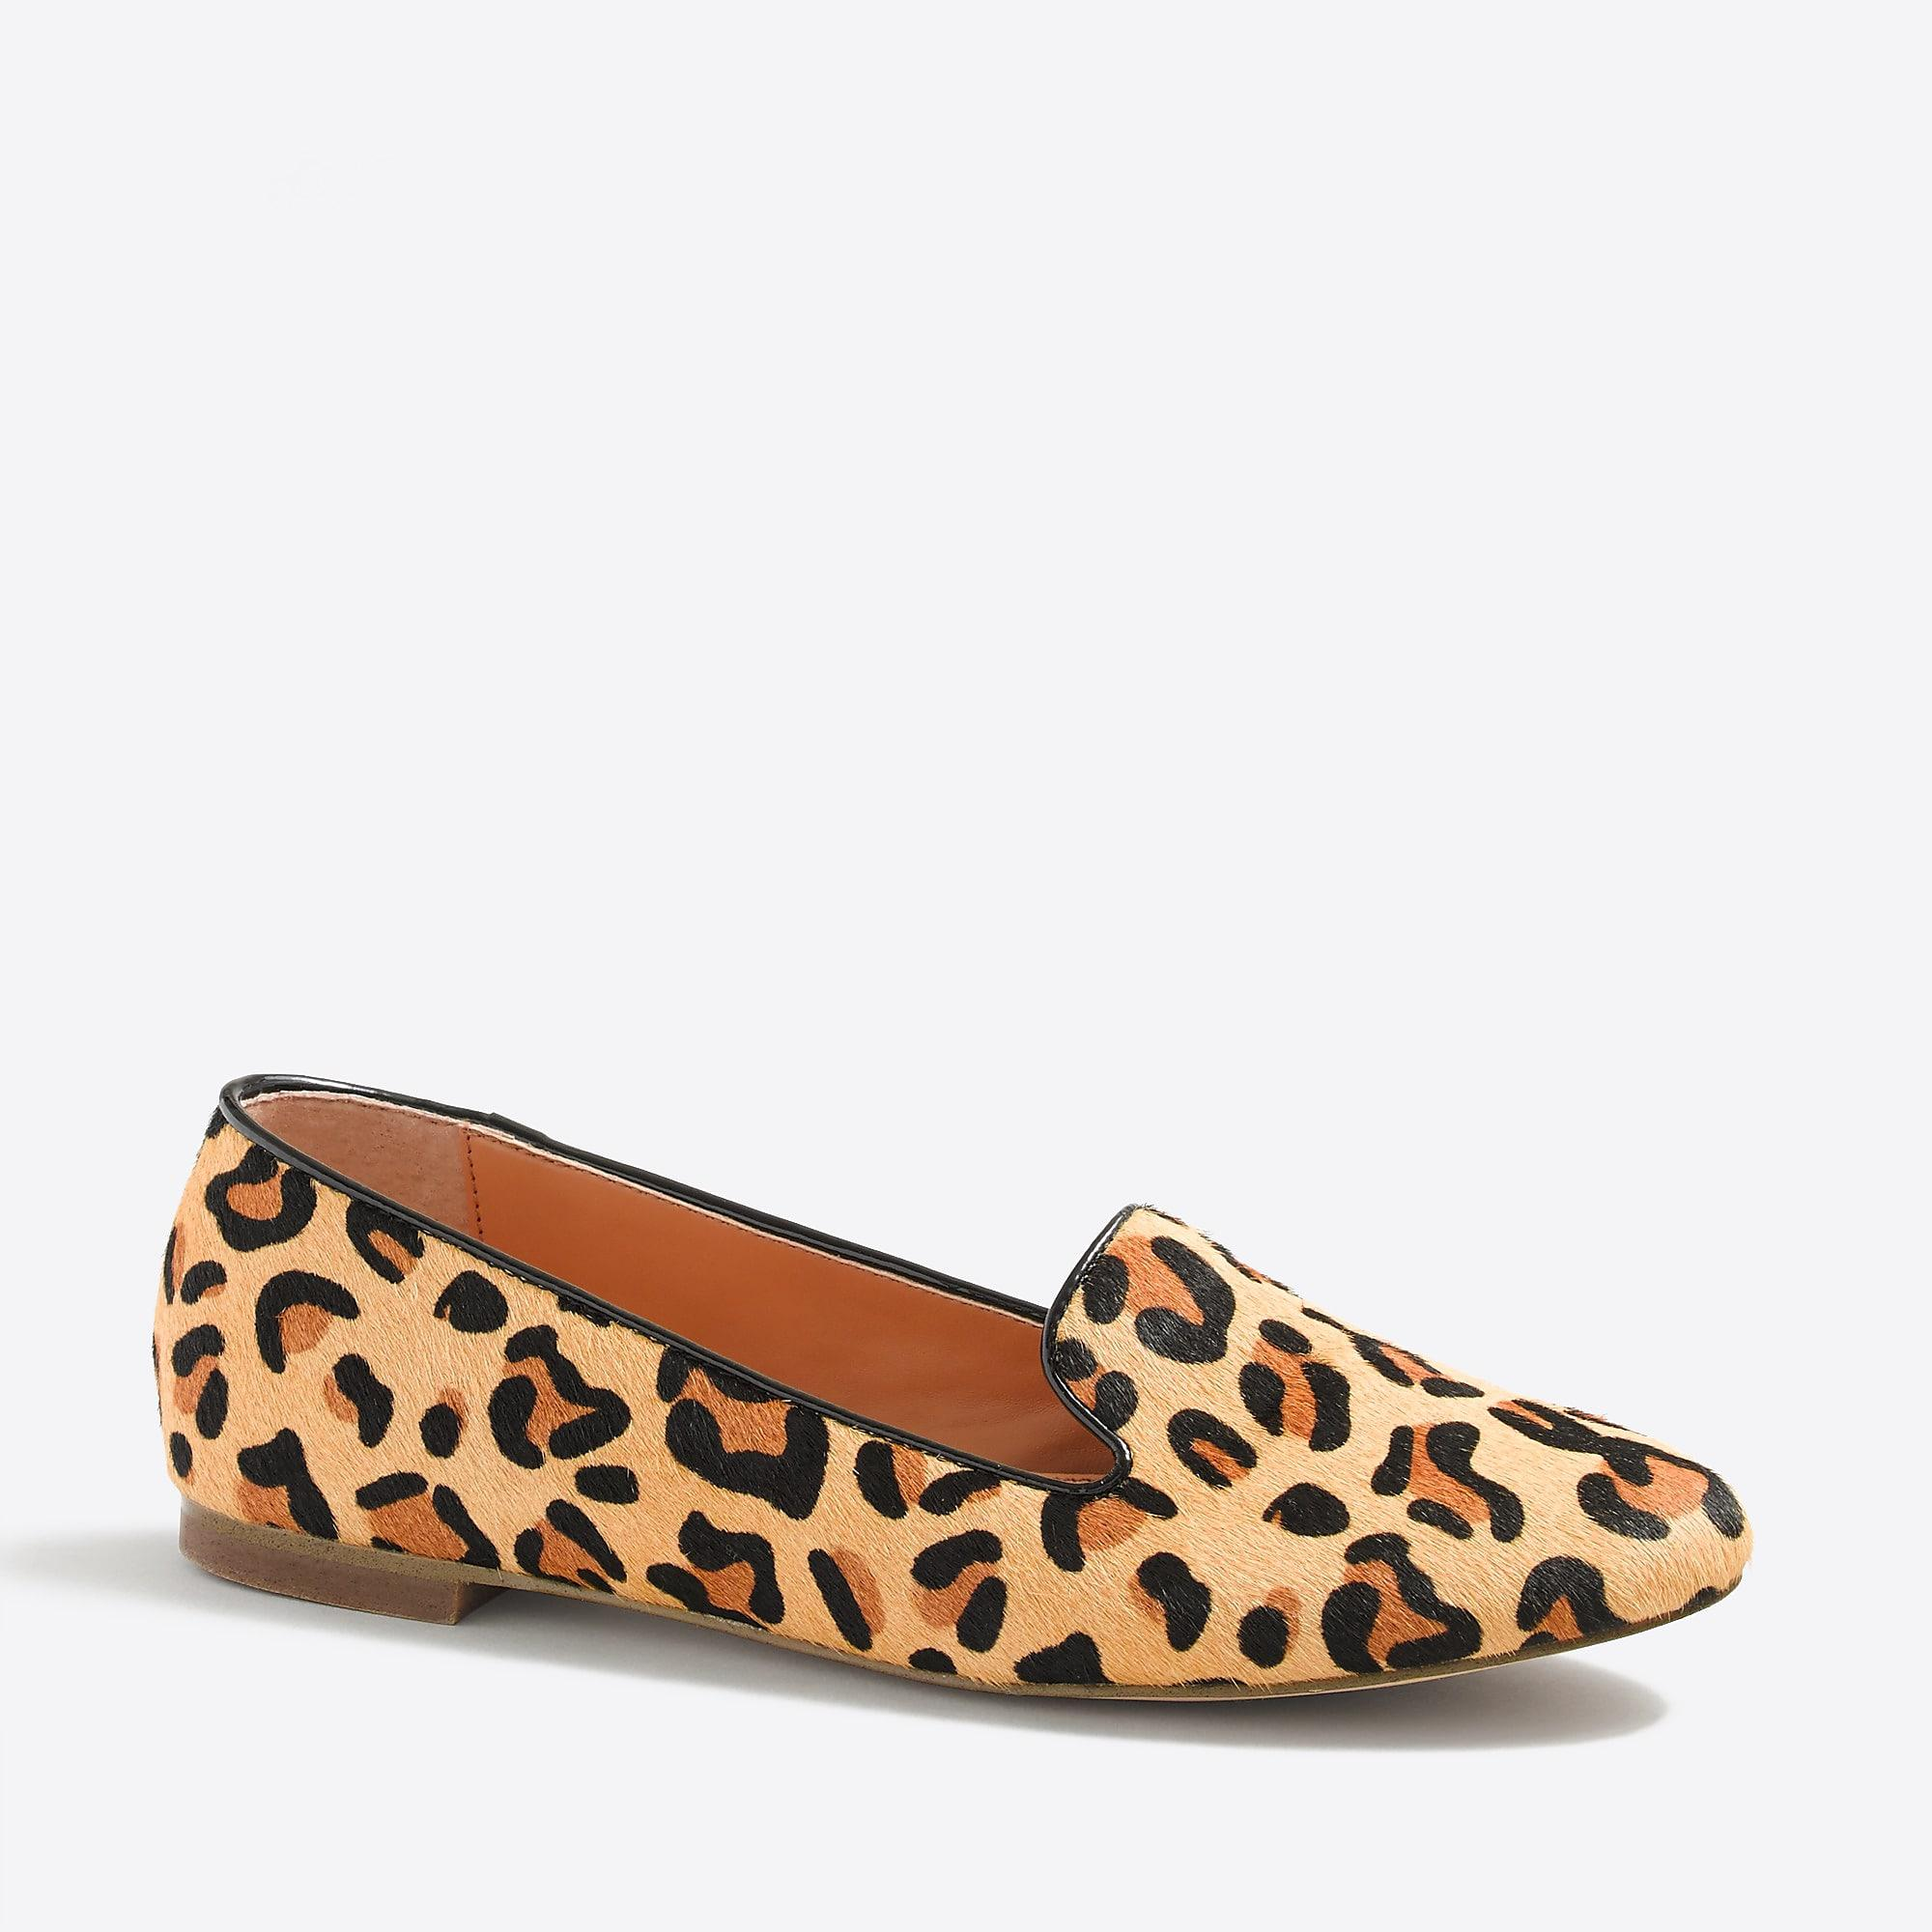 0a36a15c292 Lyst - J.Crew Cora Leopard Calf Hair Loafers in Brown